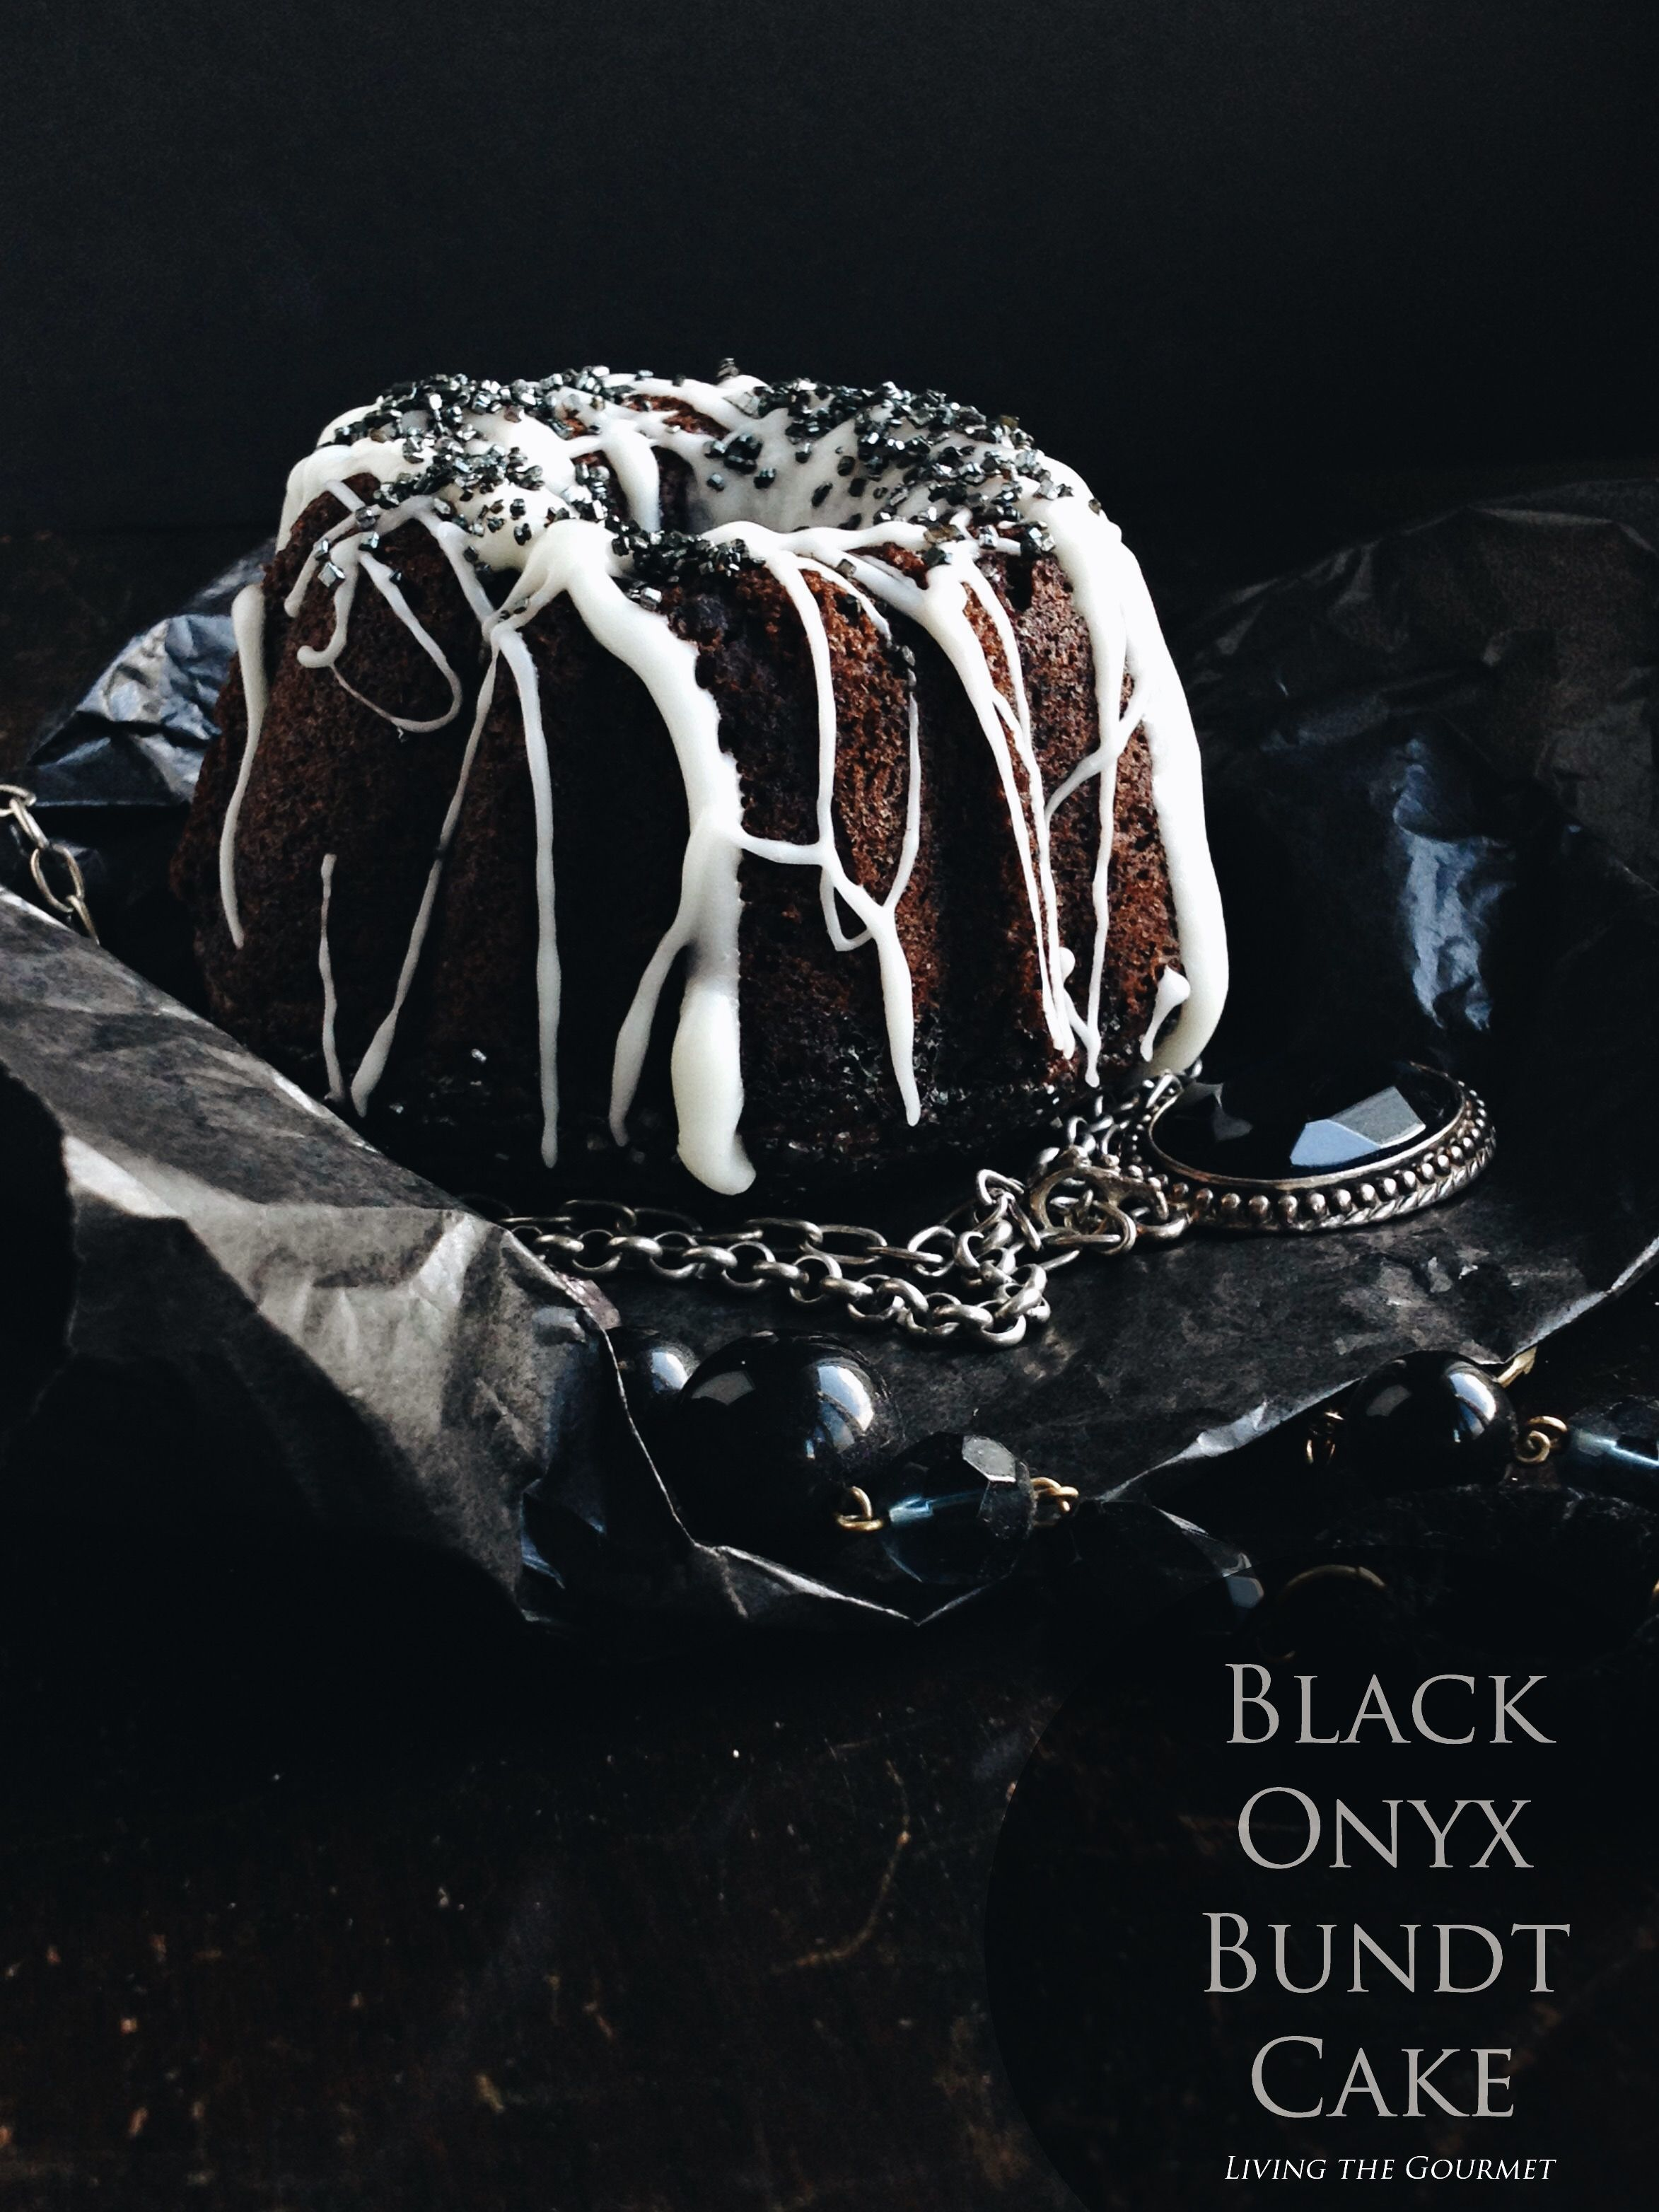 Black Onyx Bundt Cake #bundtbakers